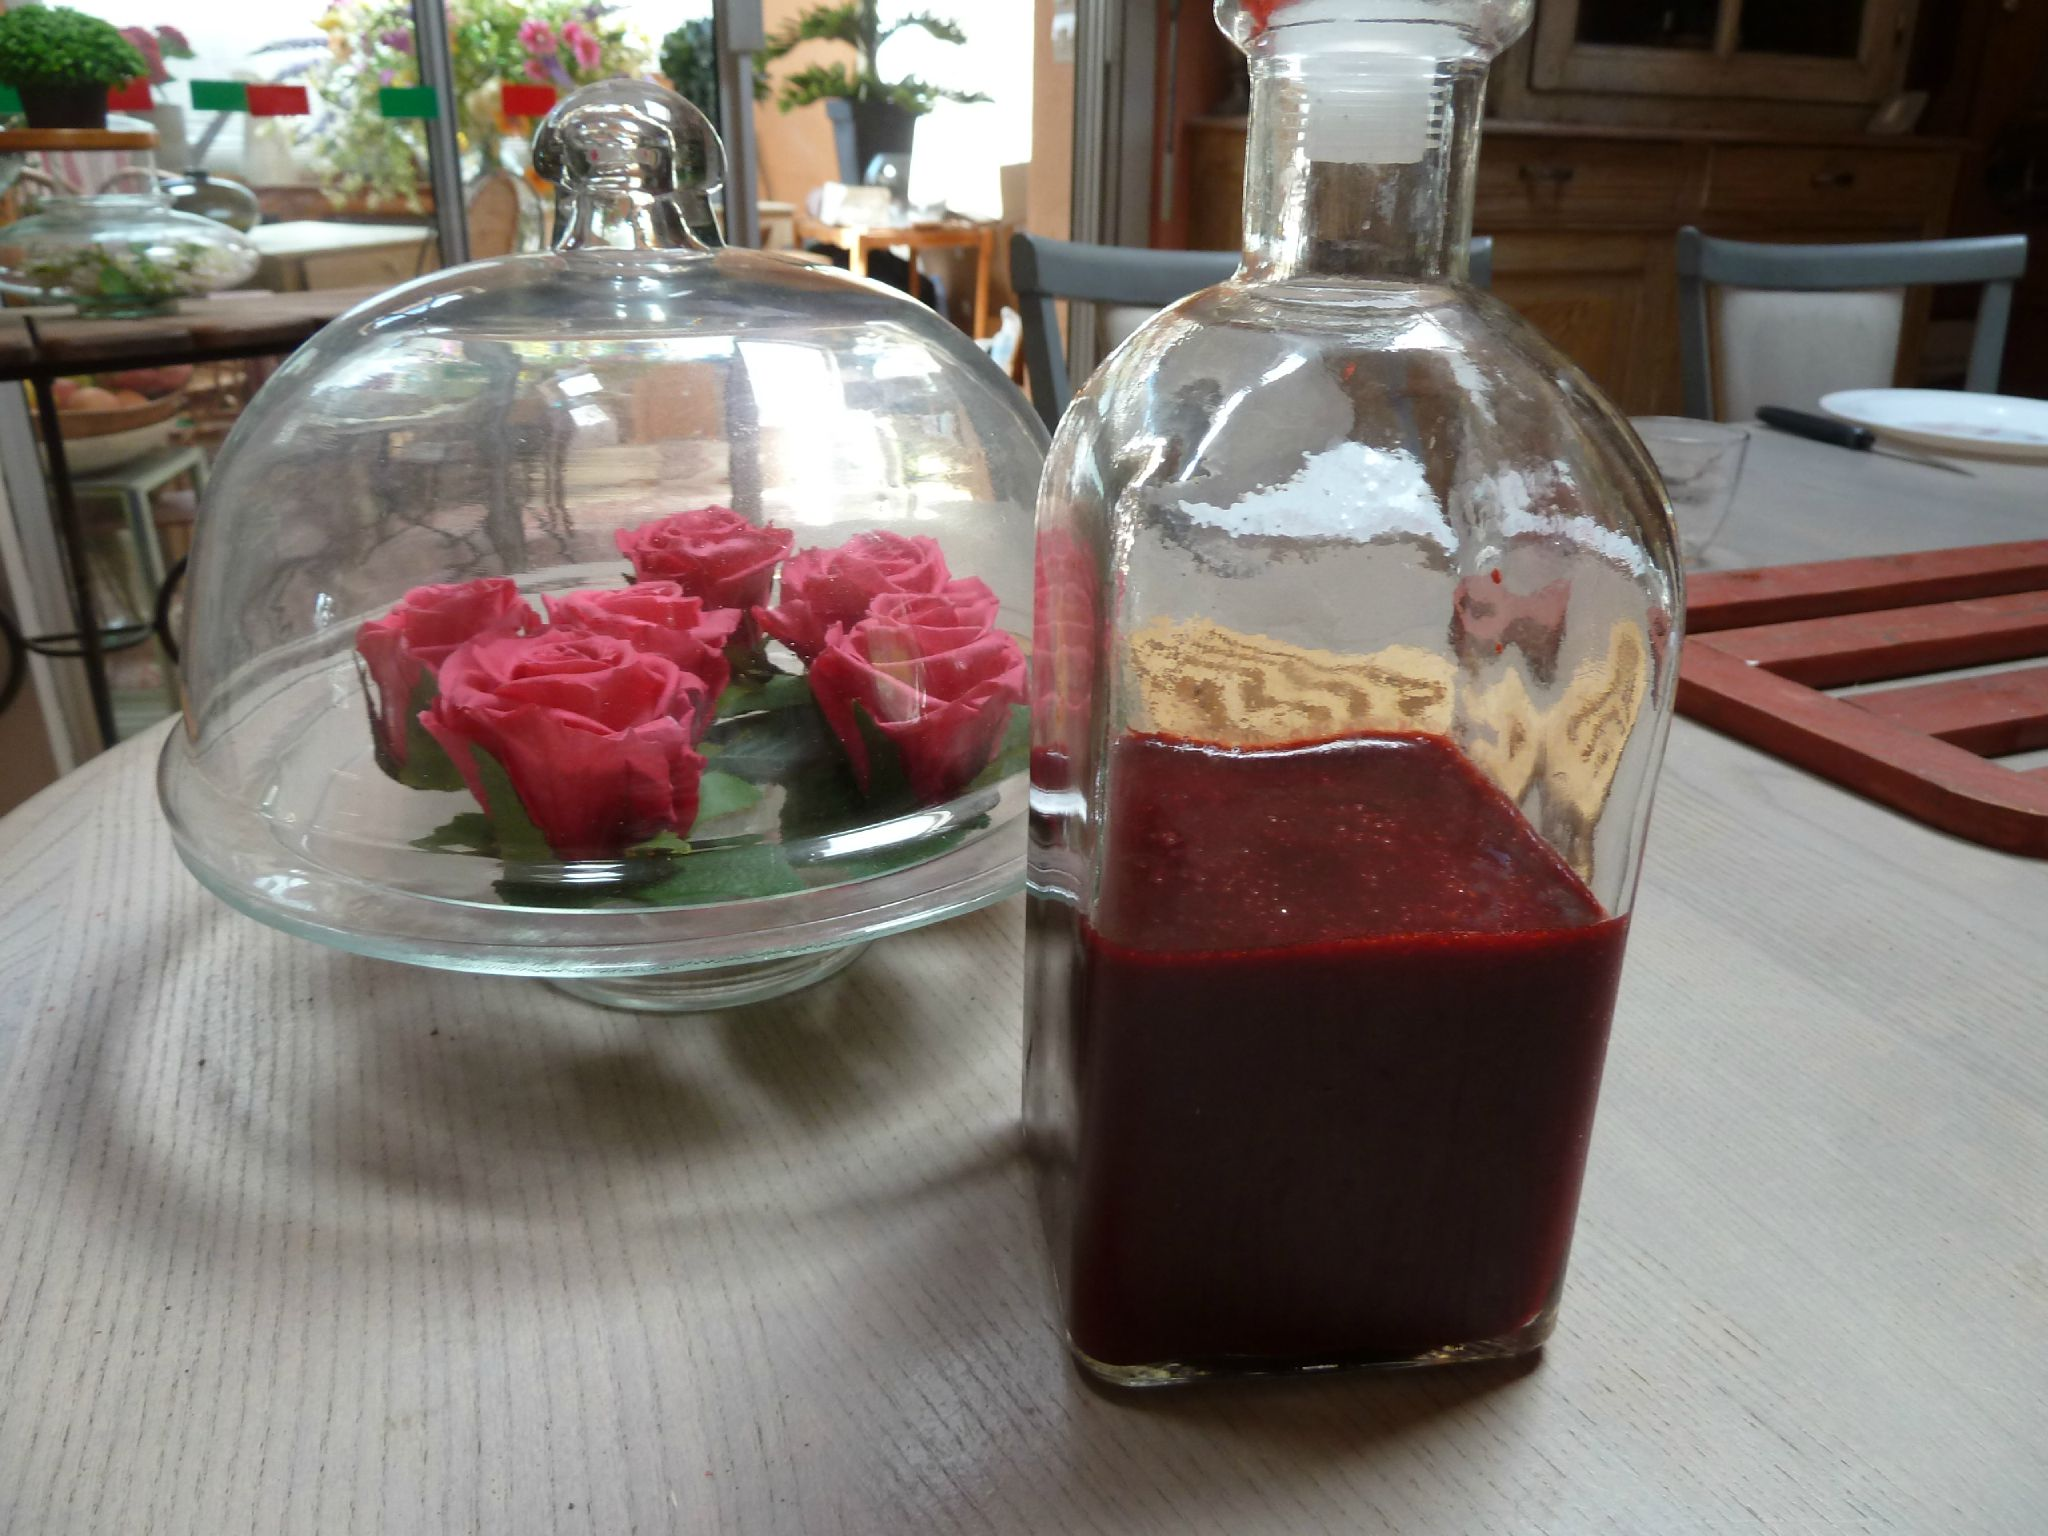 18-coulis mures et framboises - www.passionpotager.canalblog.com